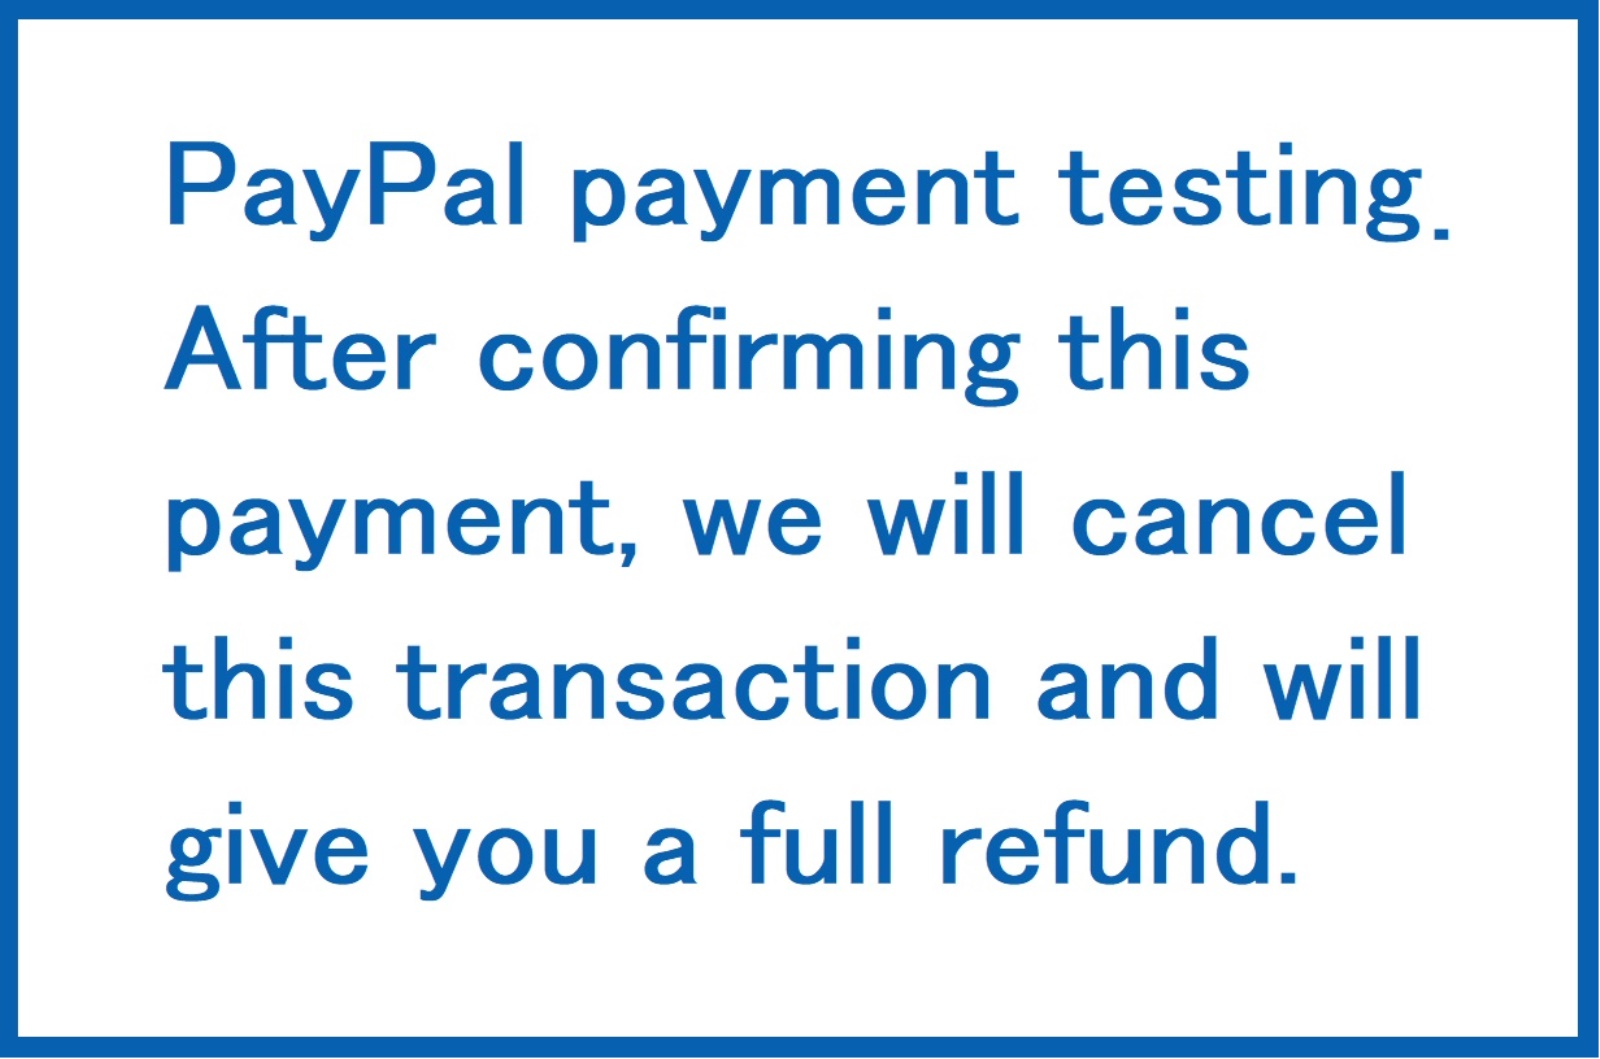 paypal payment testing